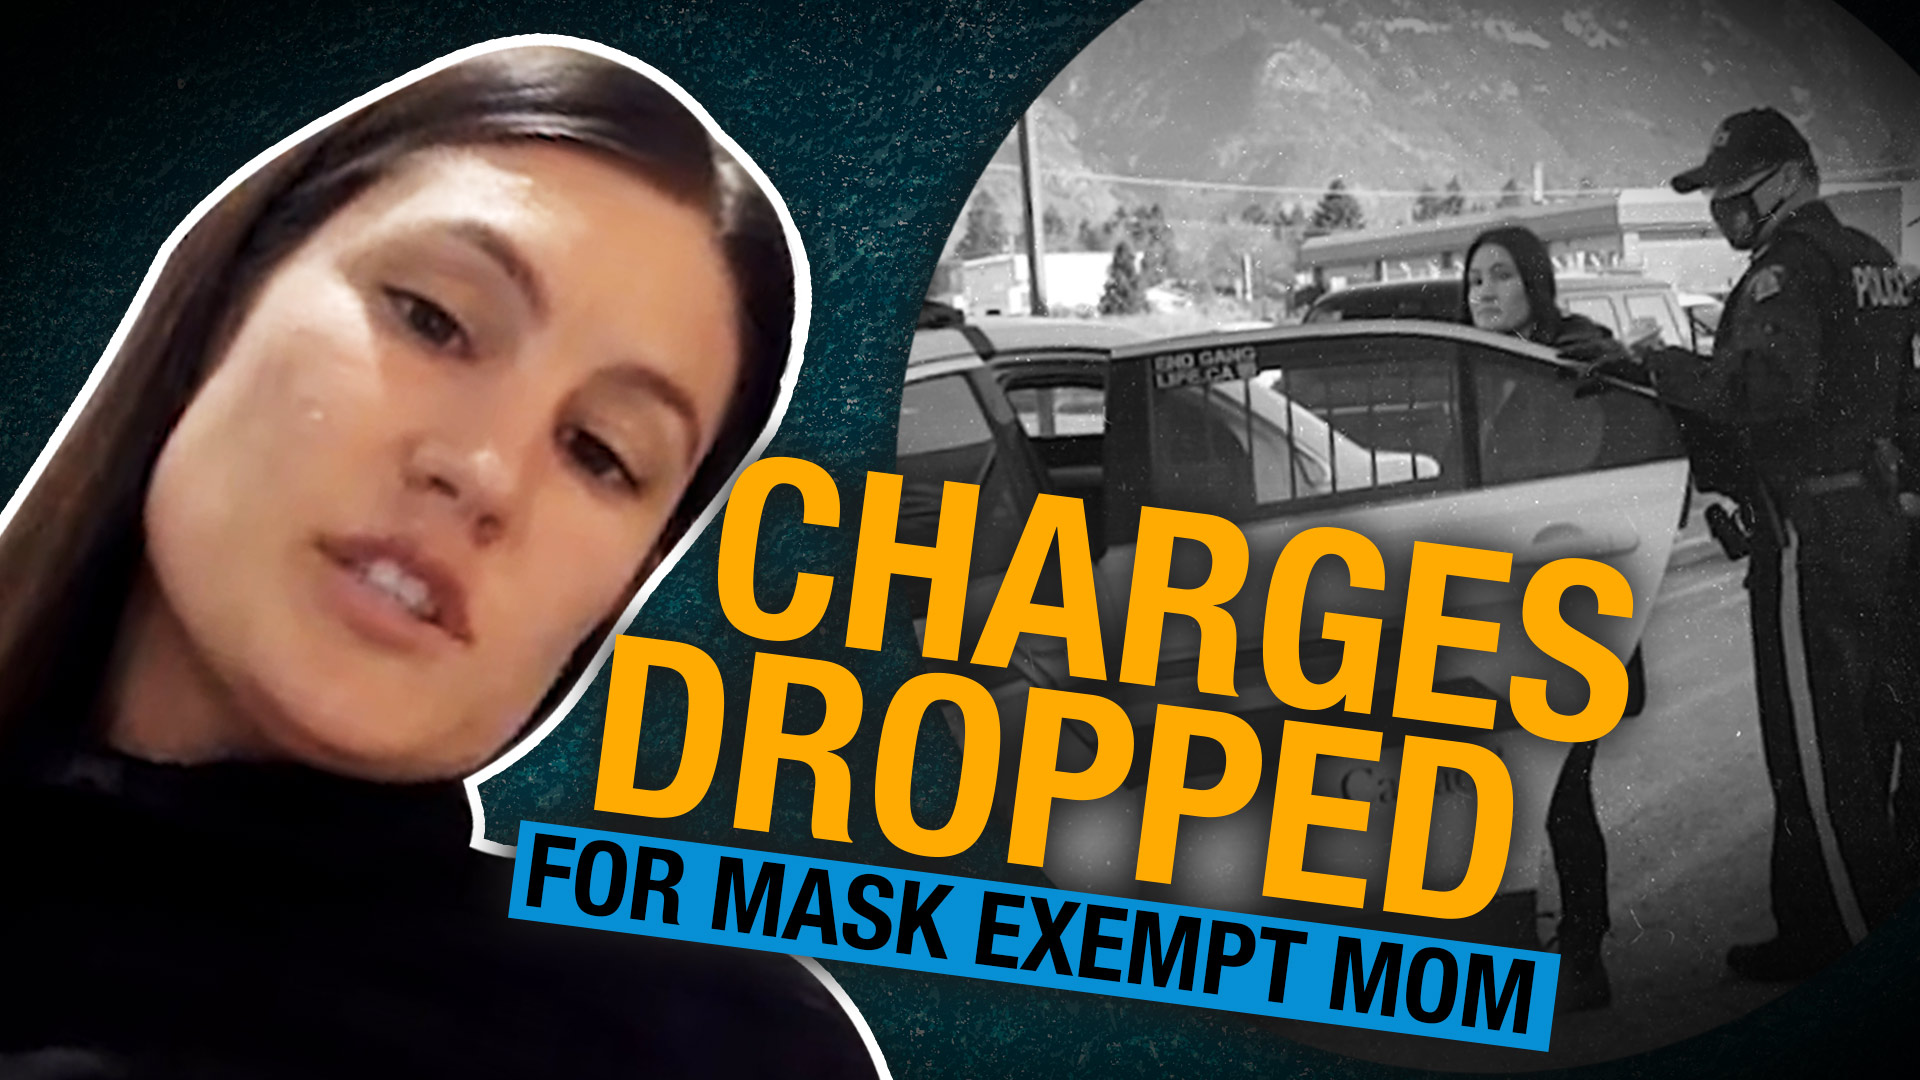 VICTORY: B.C. mother jailed after shopping maskless has charges dropped